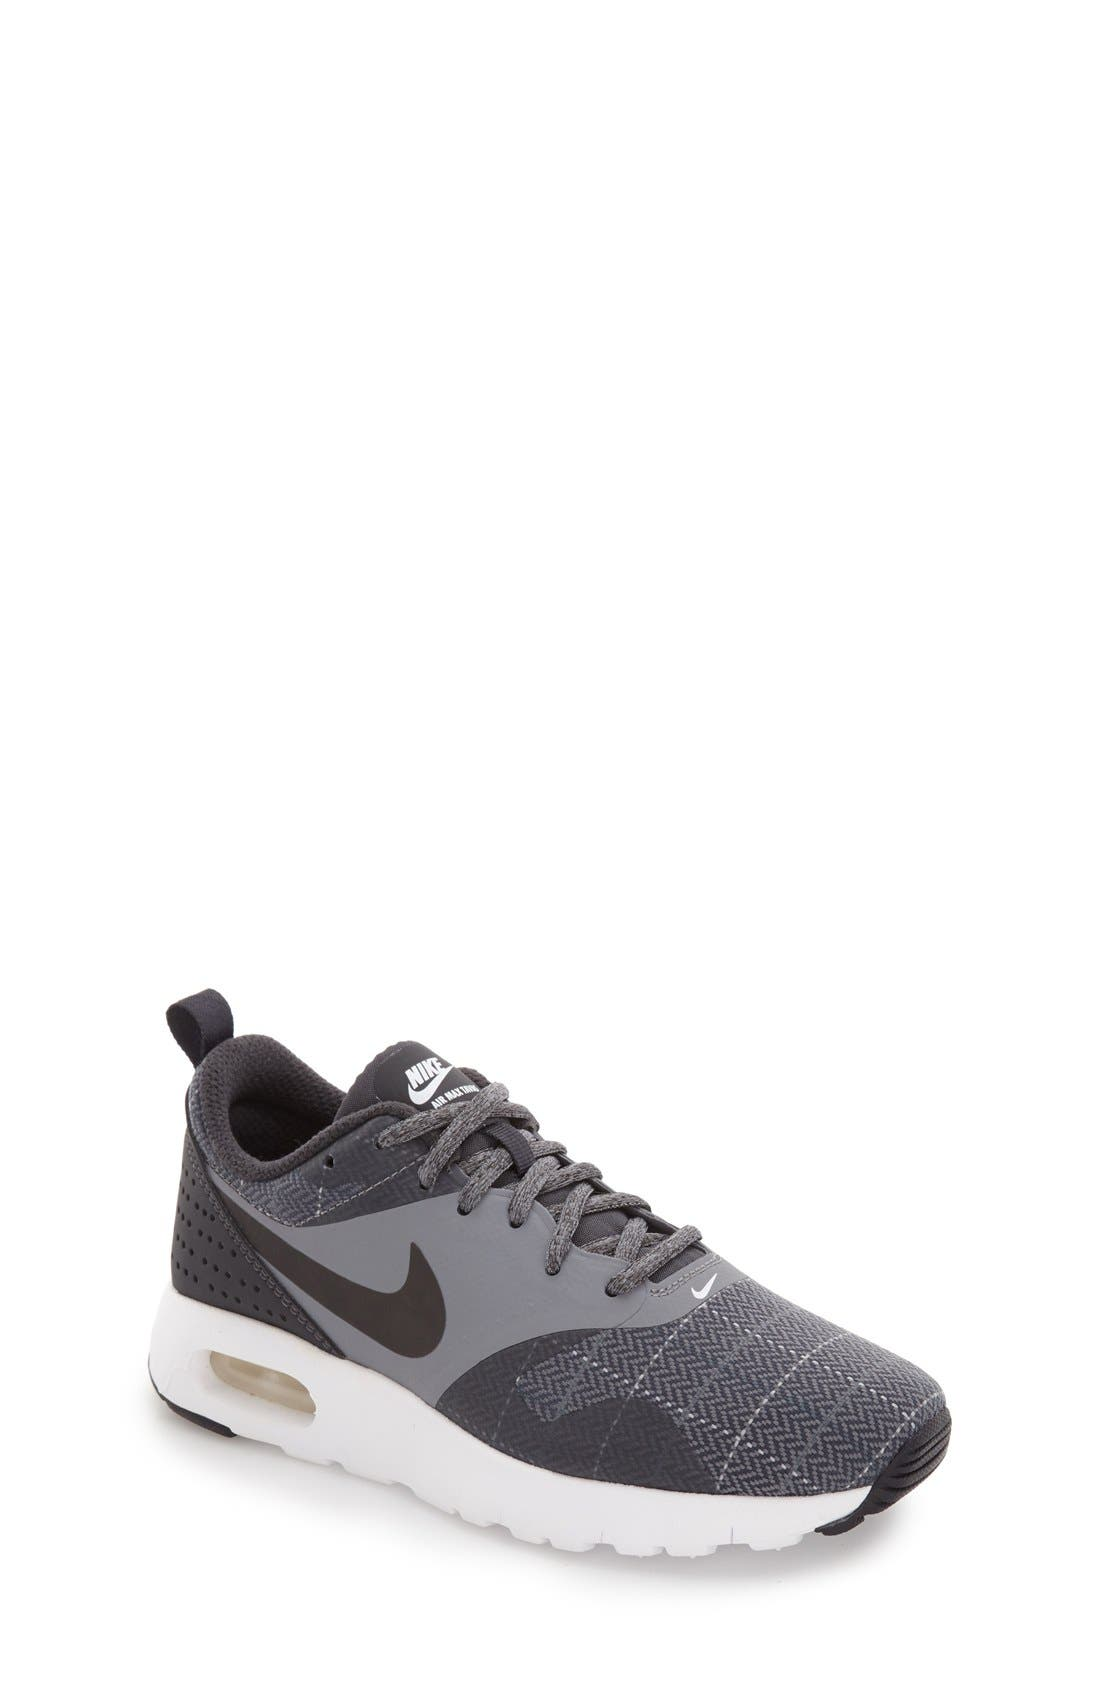 Air Max Tavas Sneaker,                             Main thumbnail 1, color,                             001